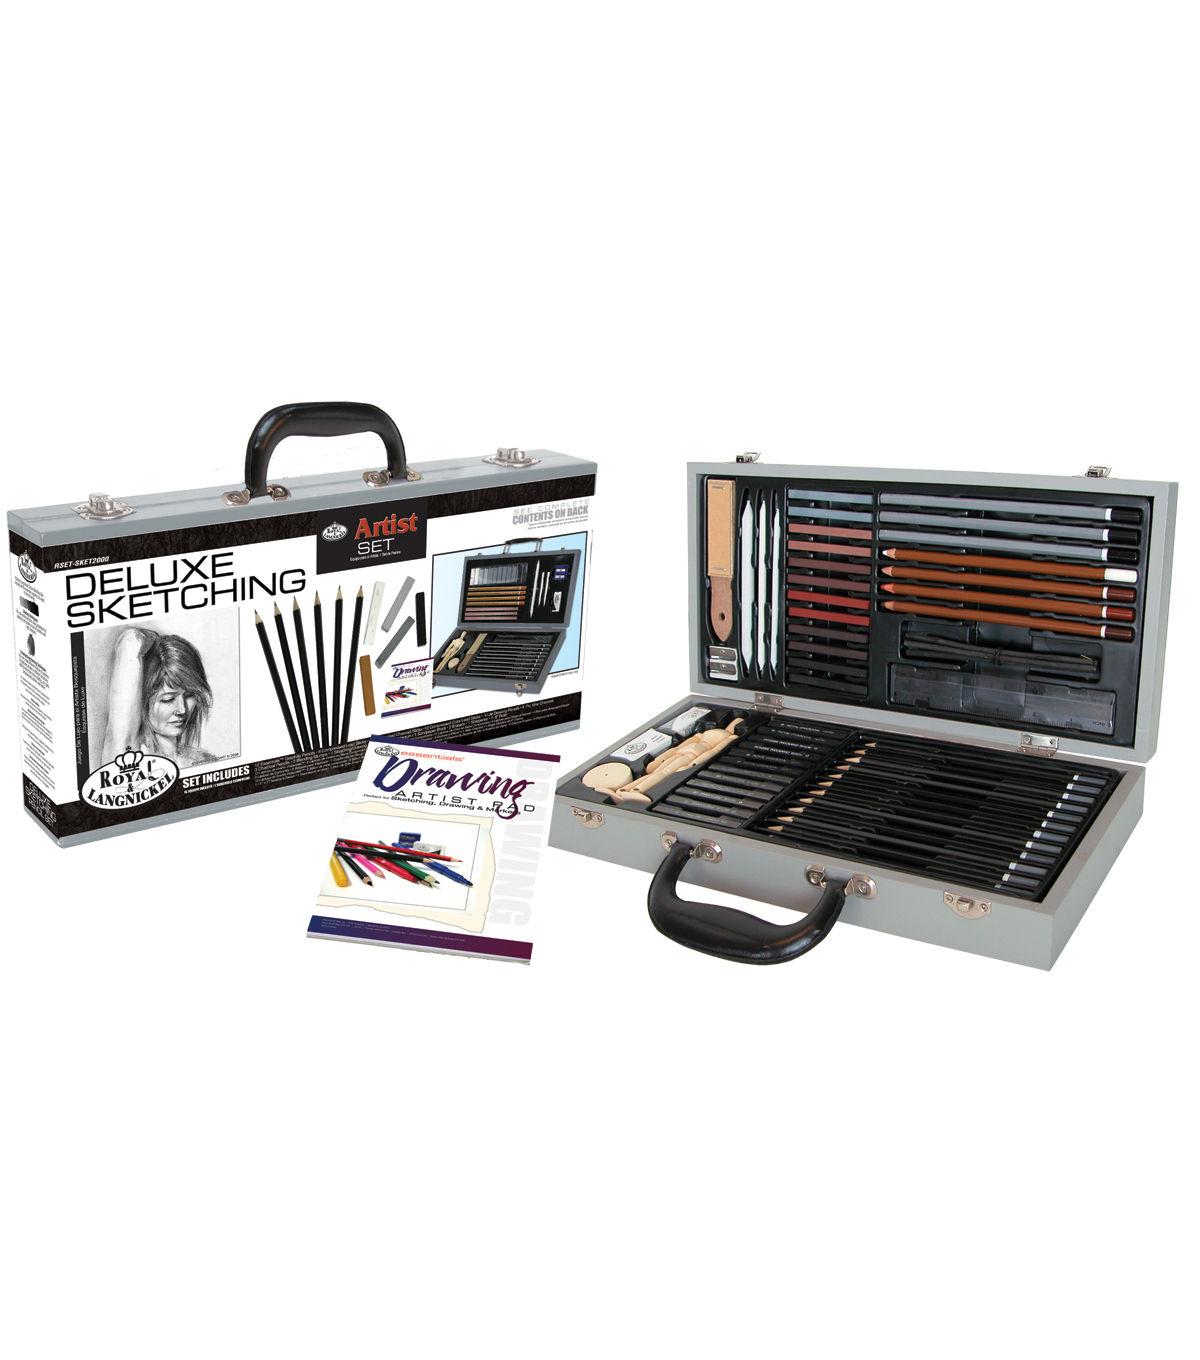 Royal Brush Deluxe Sketching Artist Set